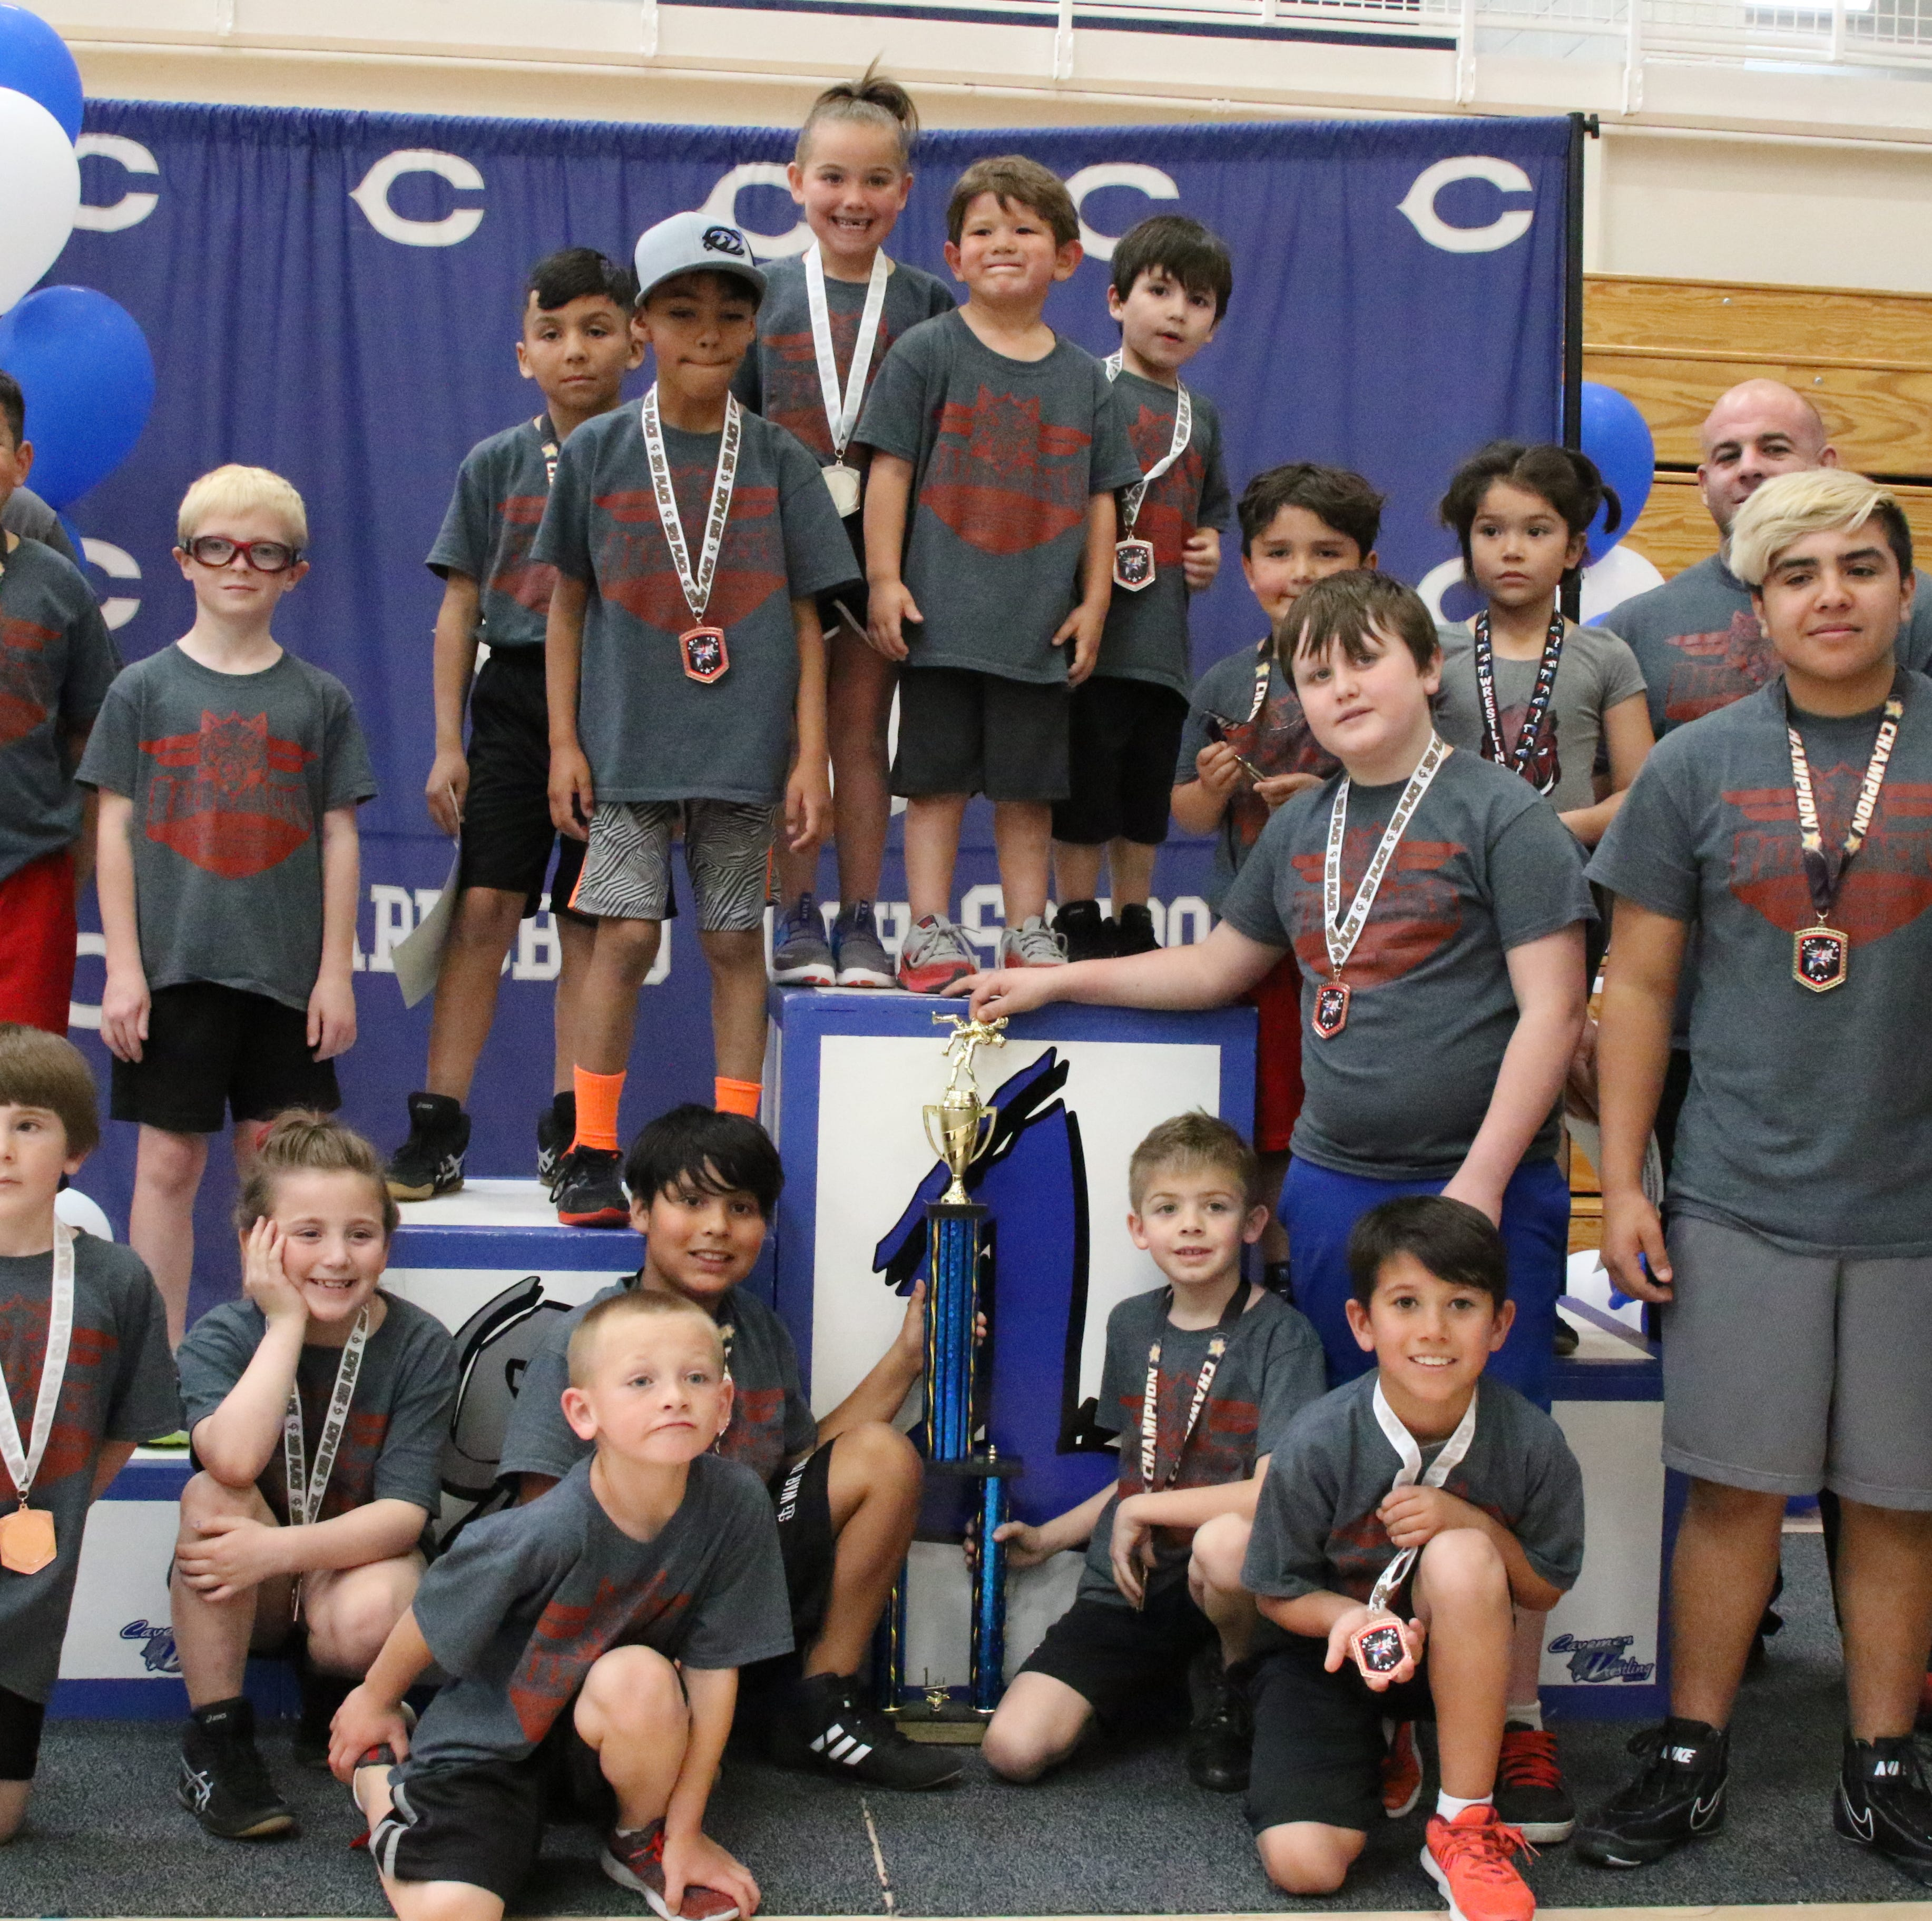 Razorbacks claim first Little Caveman Wrestling title